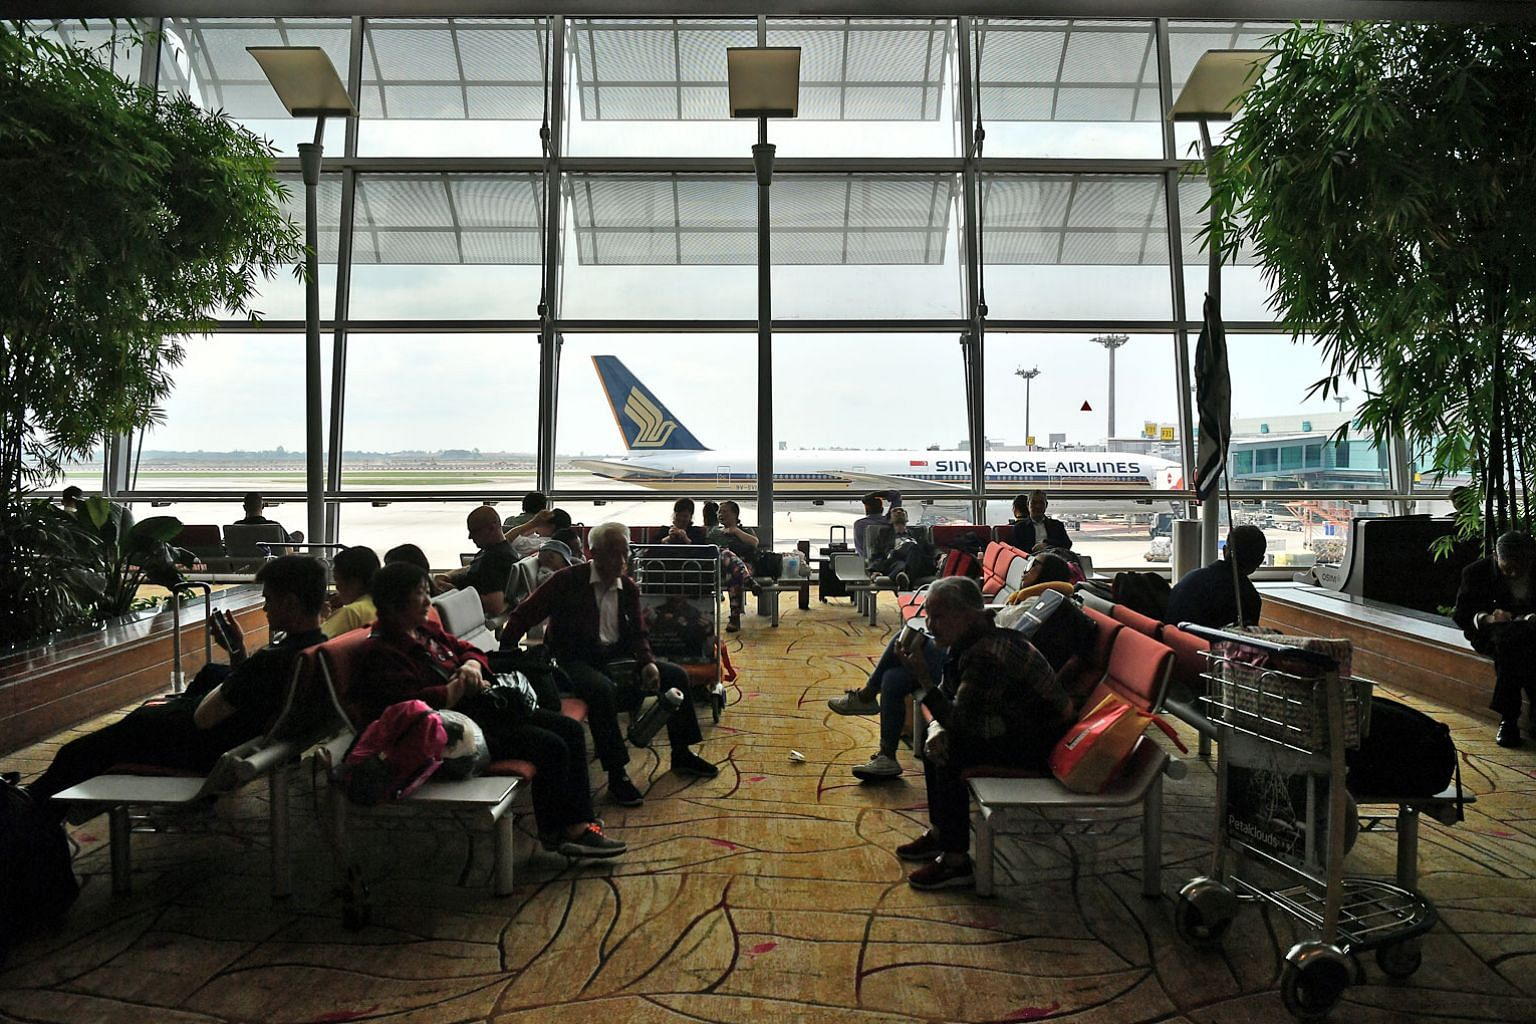 During the financial year, Singapore Airlines carriers - the parent airline, SilkAir and Scoot - filled an average of 83 per cent of all seats. This was a record for the group.